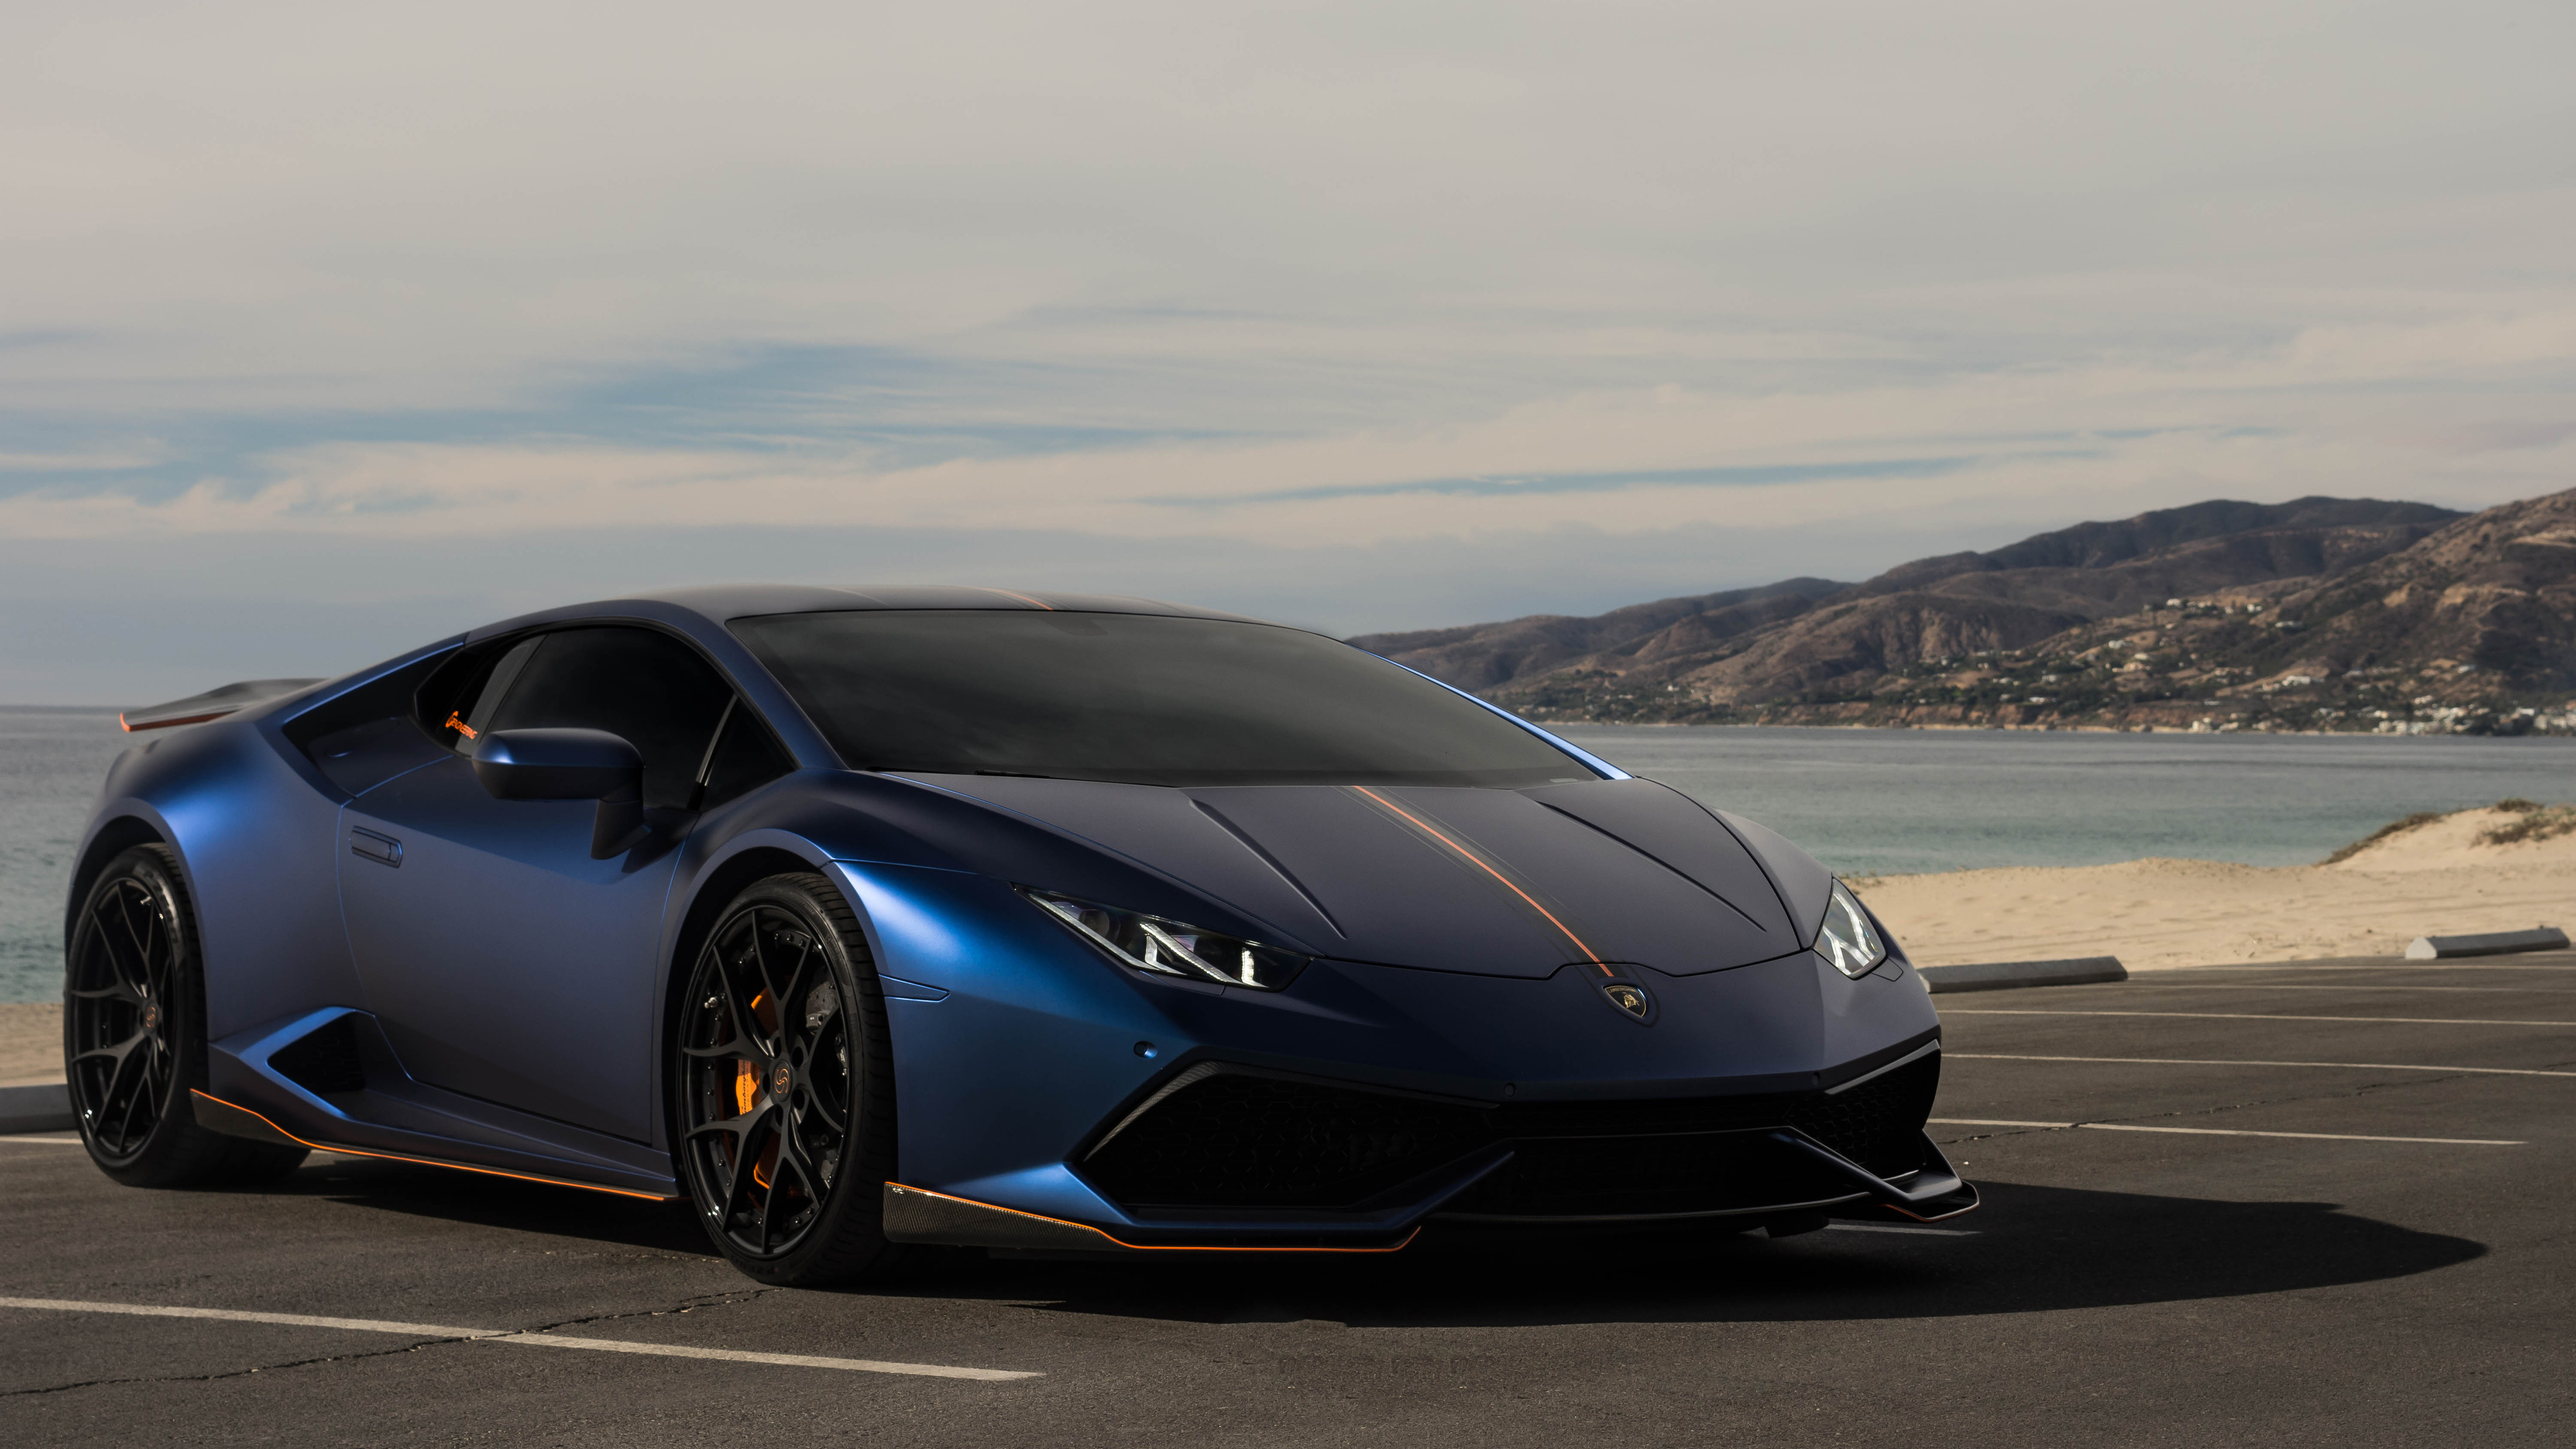 lamborghini huracan 4k 1546362090 - Lamborghini Huracan 4k - lamborghini wallpapers, lamborghini huracan wallpapers, hd-wallpapers, cars wallpapers, 5k wallpapers, 4k-wallpapers